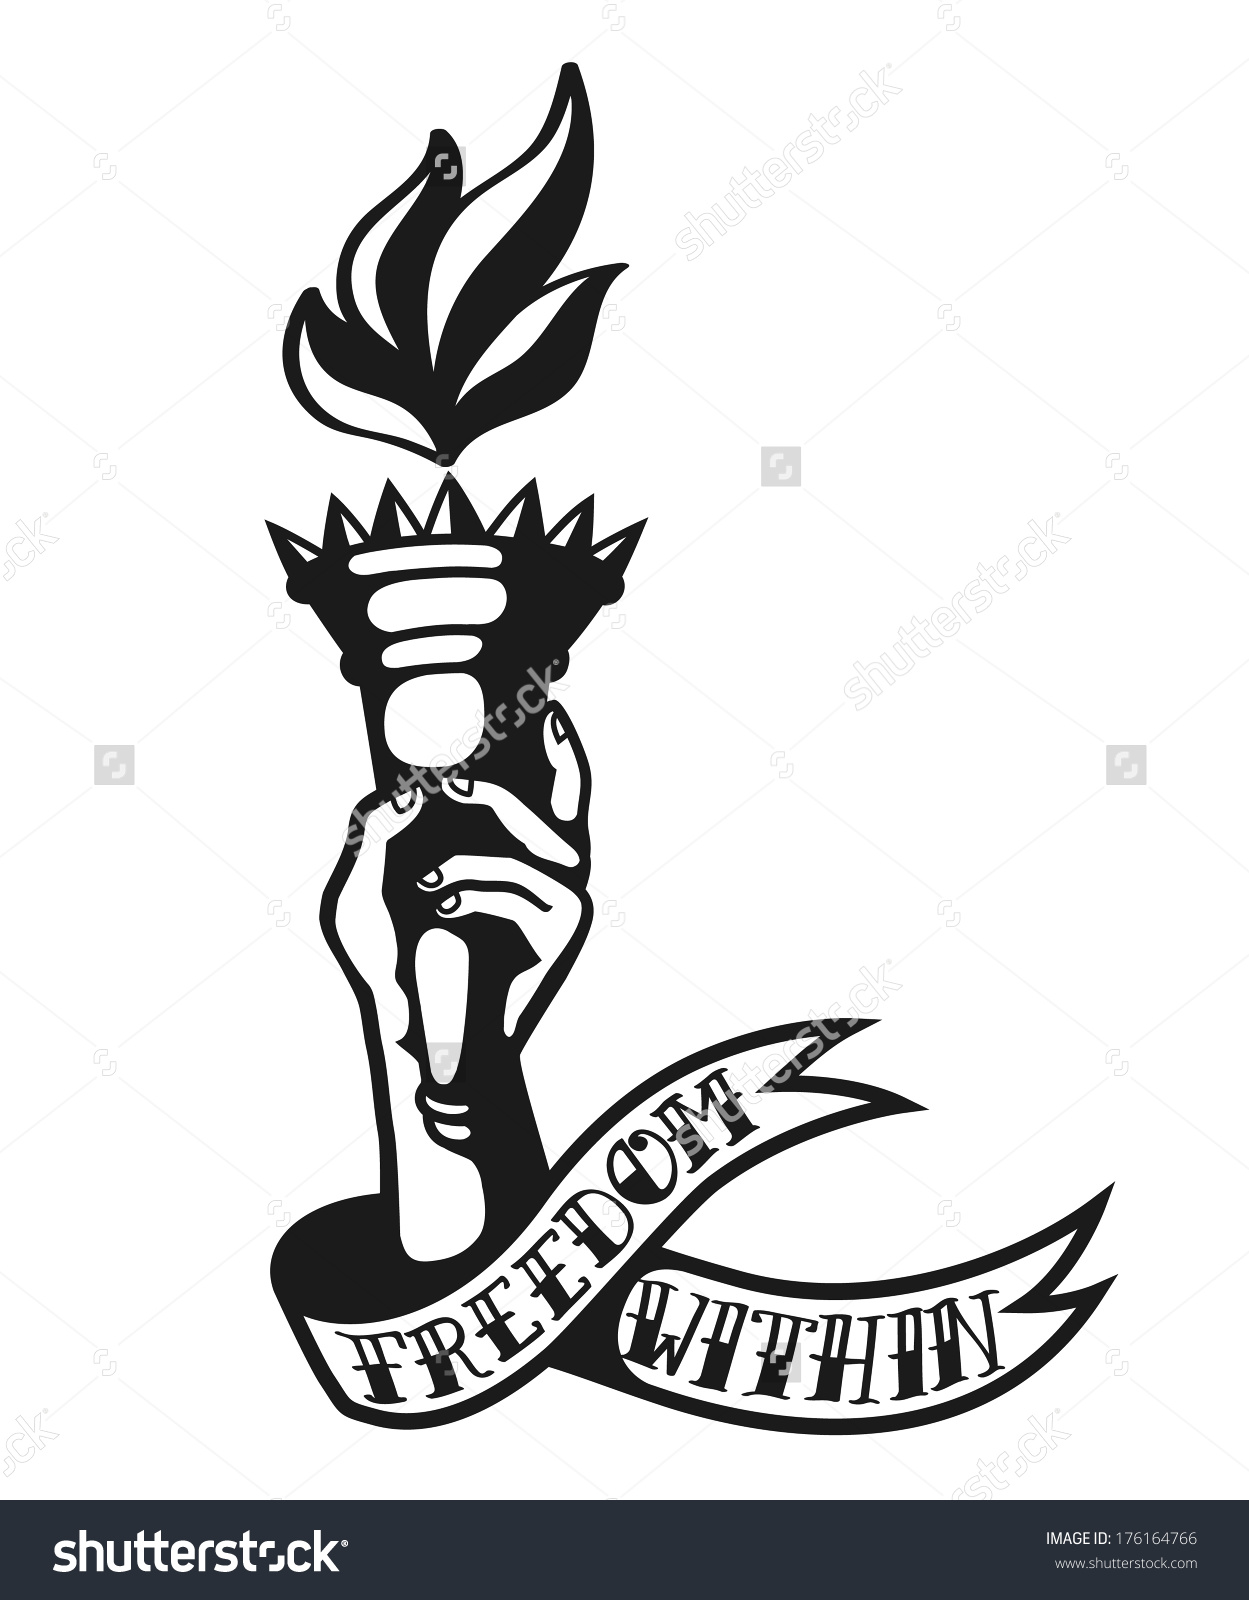 Freedom Within Cool Tattoo Design Hand Stock Illustration.